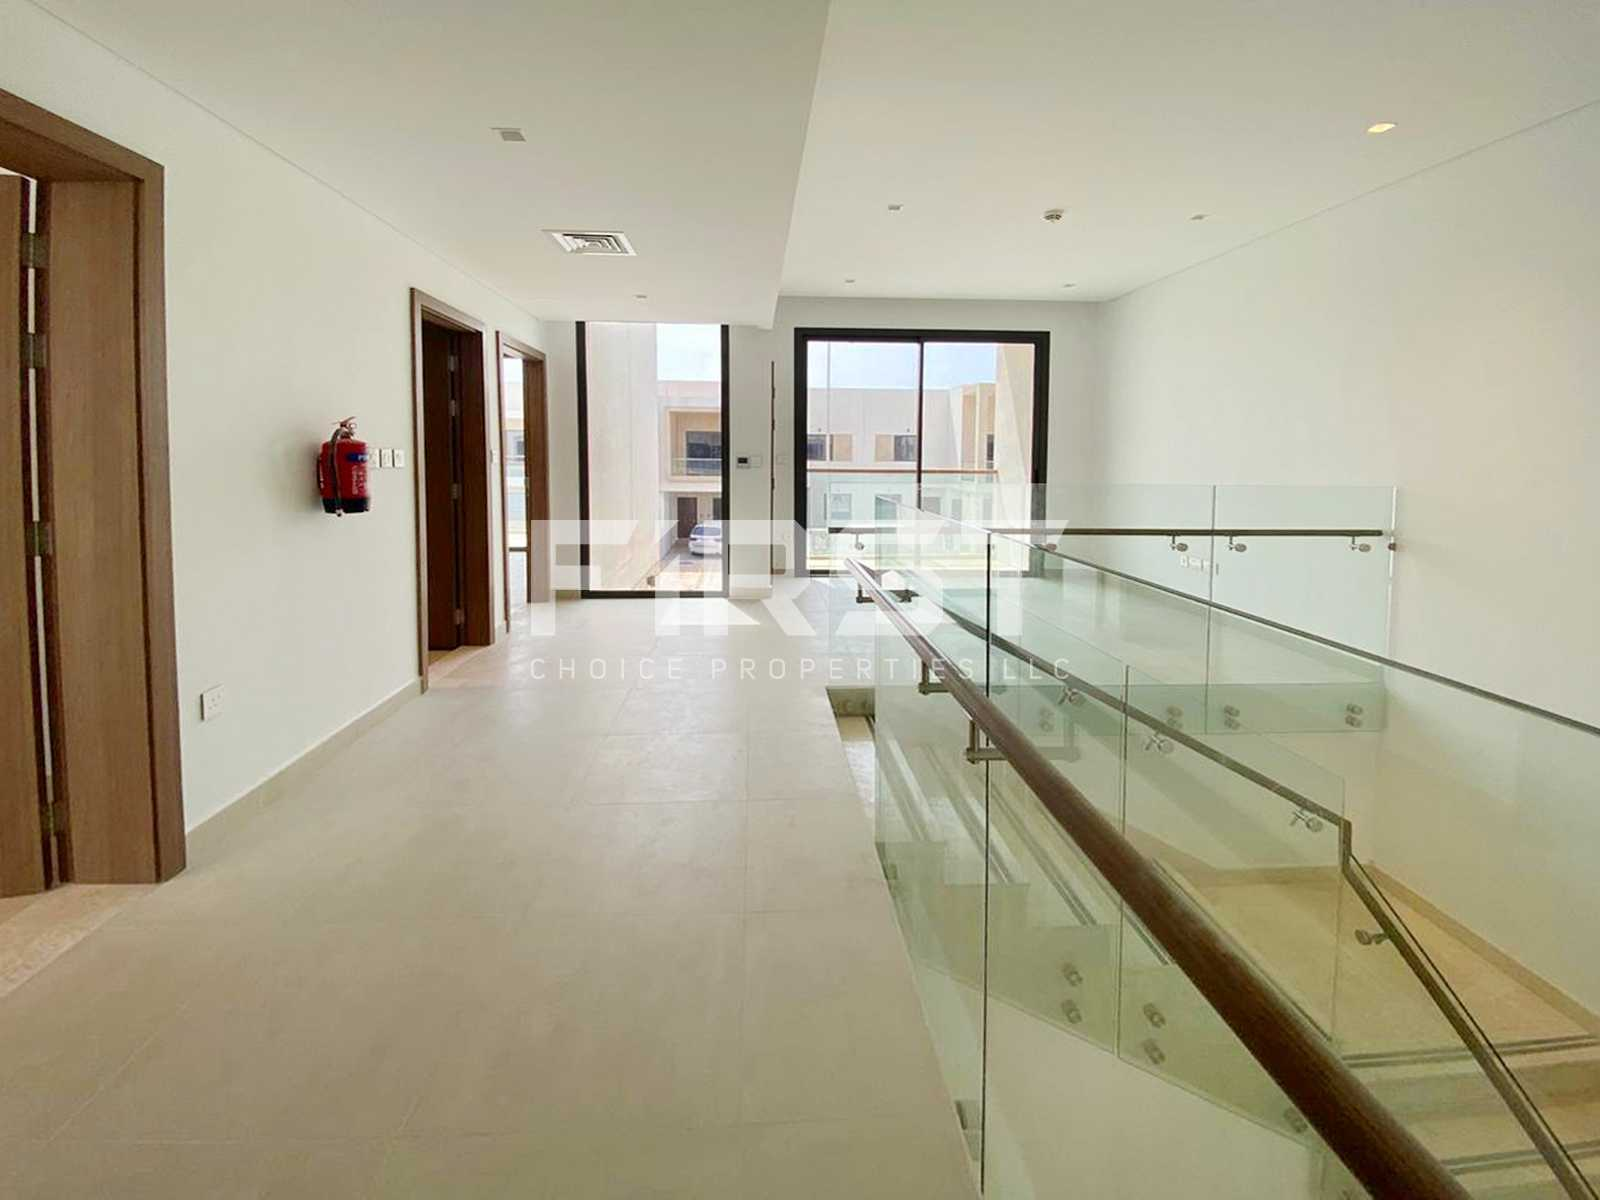 Internal Photo of 3 Bedroom Duplex Type Y in Yas Acres Yas Island Abu Dhabi UAE (21).jpg